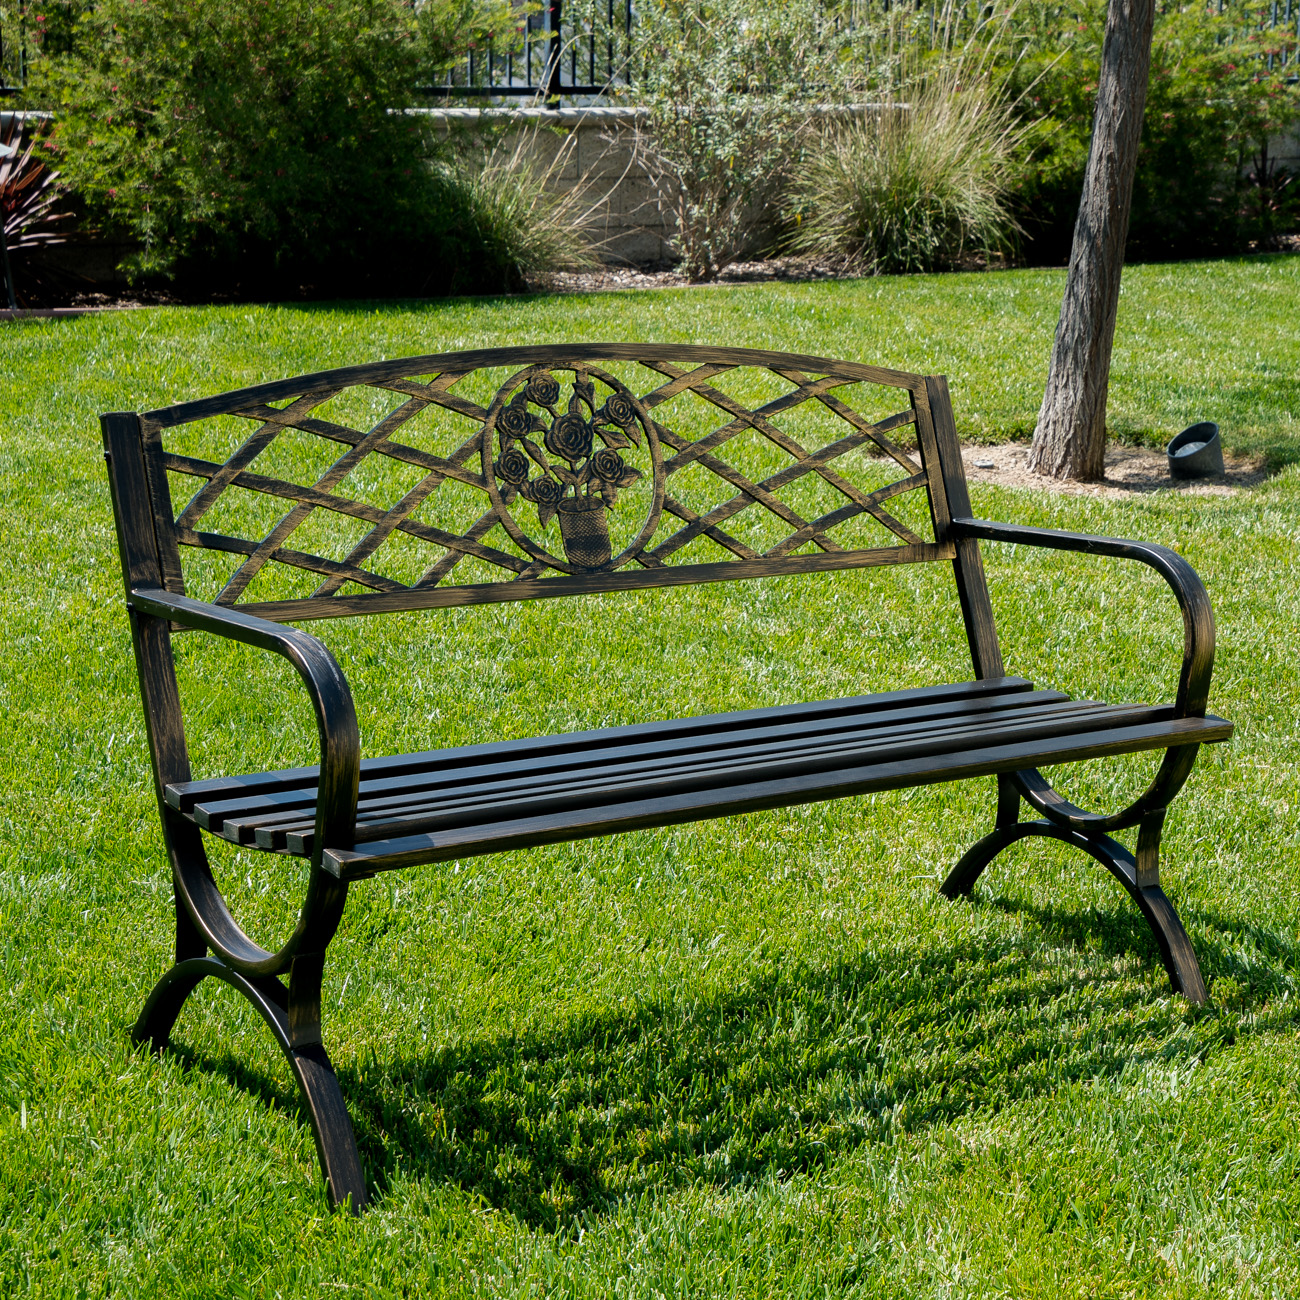 "Belleze 50"" Patio Garden Bench Park Yard Outdoor Furniture Porch Chair Seat Steel Frame, Bronze by Belleze"